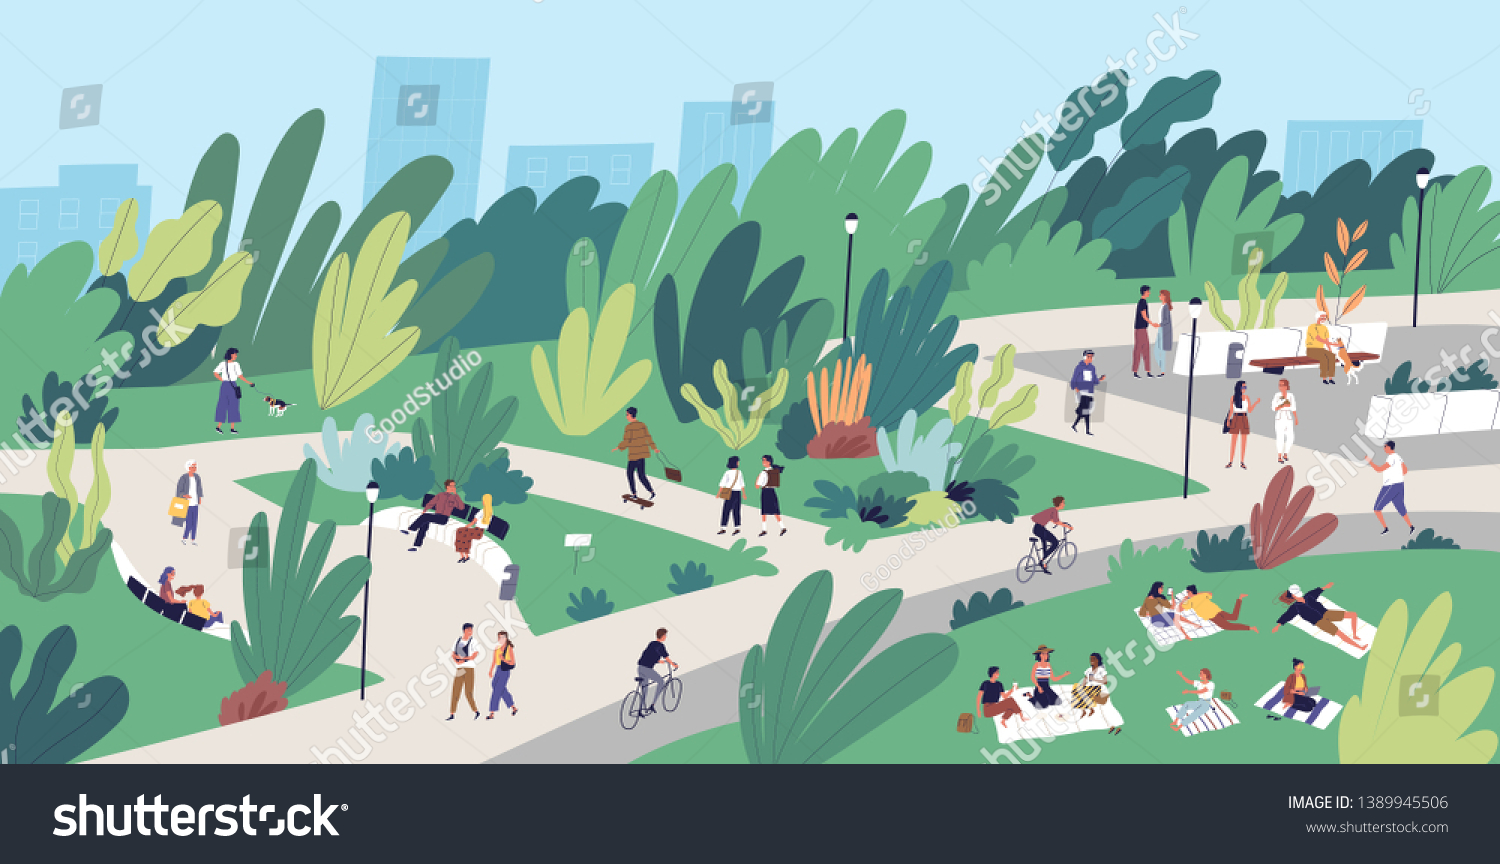 Landscape with people walking, playing, riding bicycle at city park. Urban recreation area with men and women performing leisure activities outdoors. Flat cartoon colorful vector illustration. #1389945506